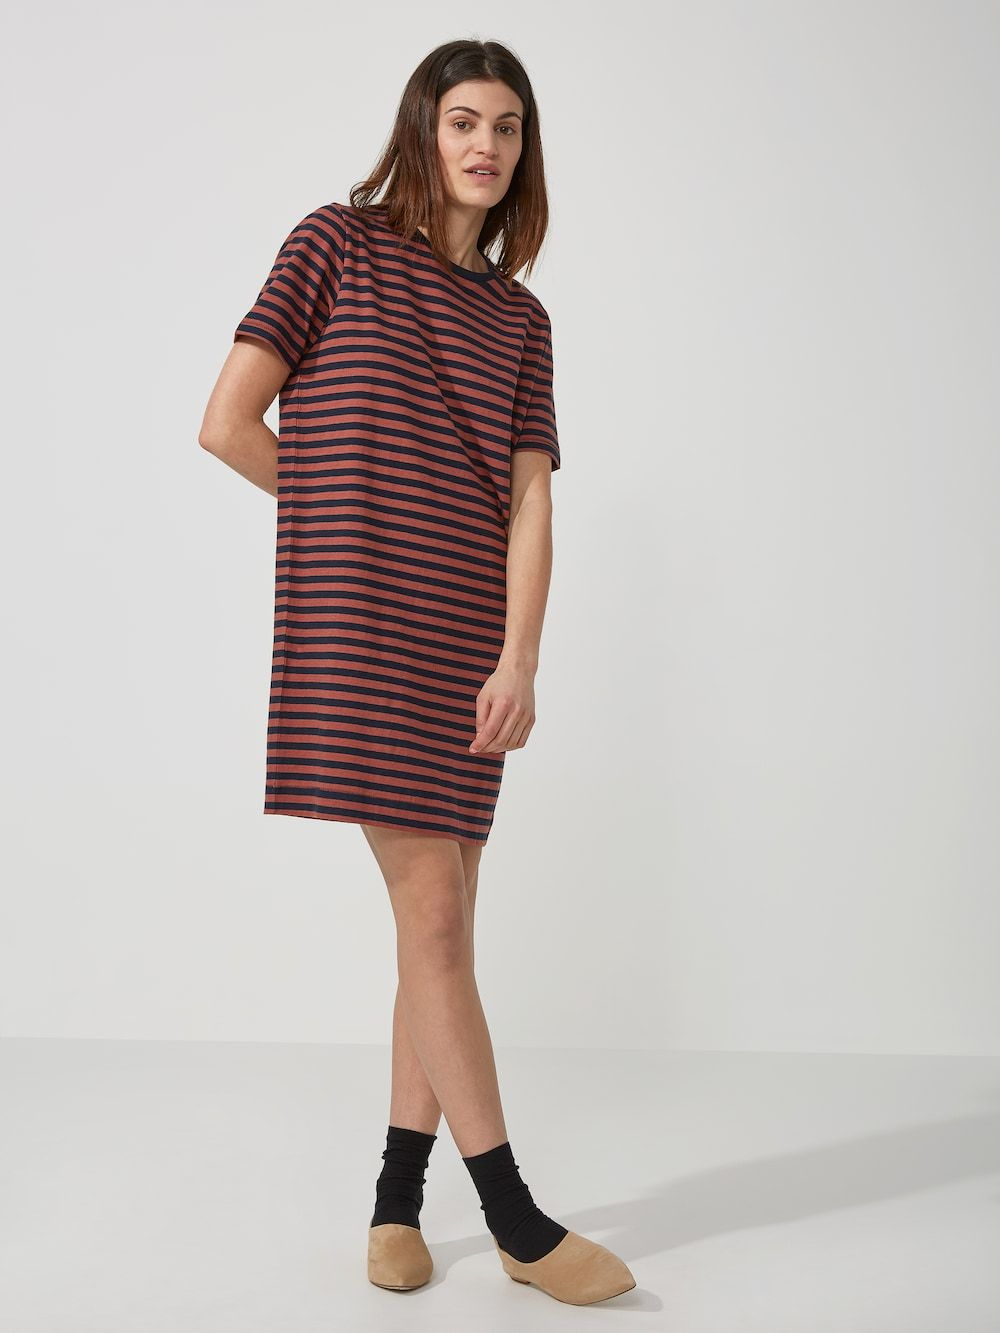 de58f150d56 Striped Linen Blend T-Shirt Dress in Dark Saphire and Red